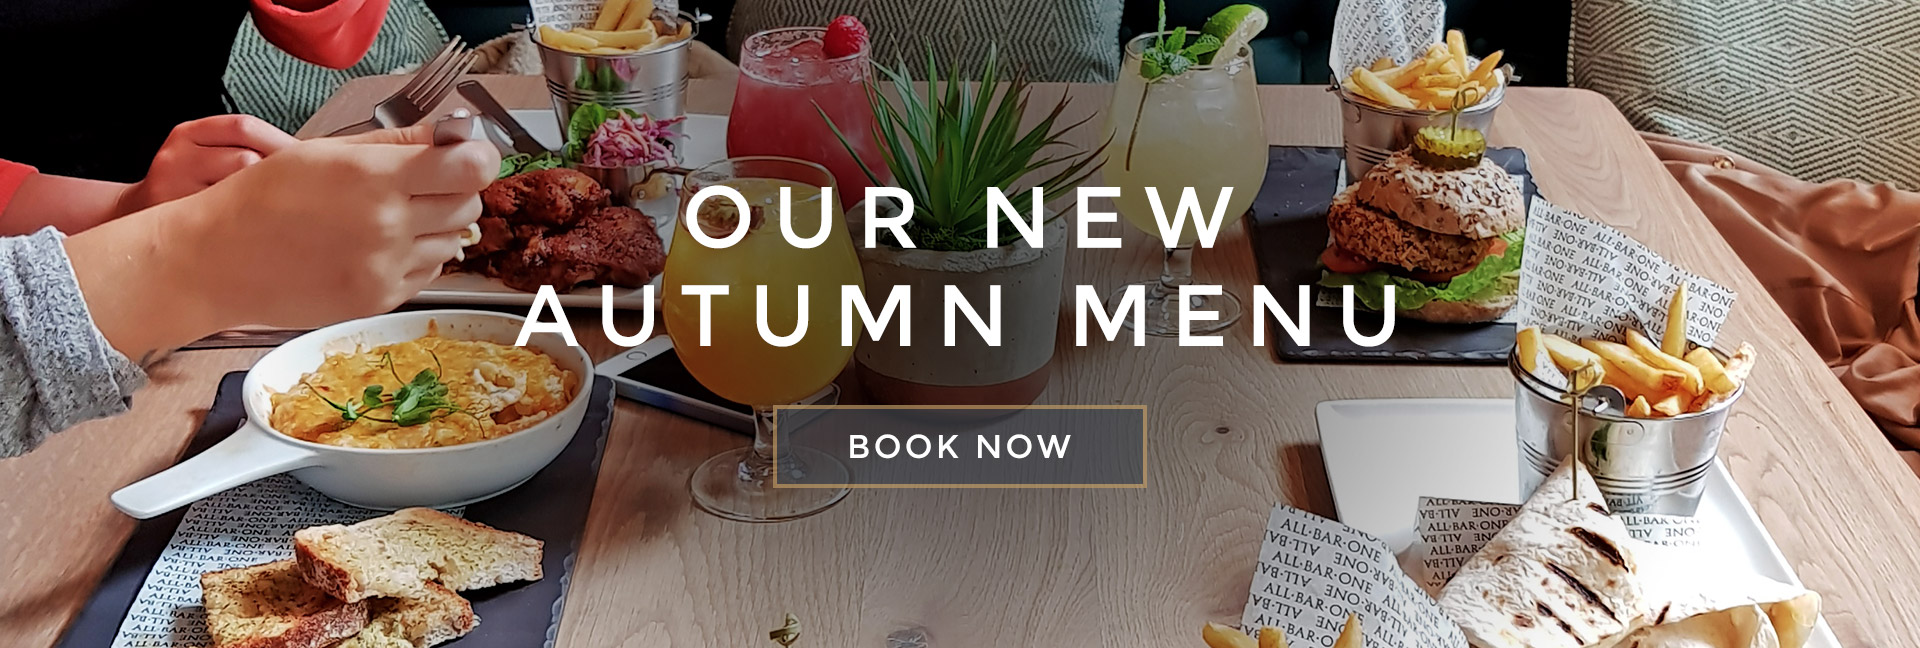 Our new Autumn menu at All Bar One Liverpool Street - Book now